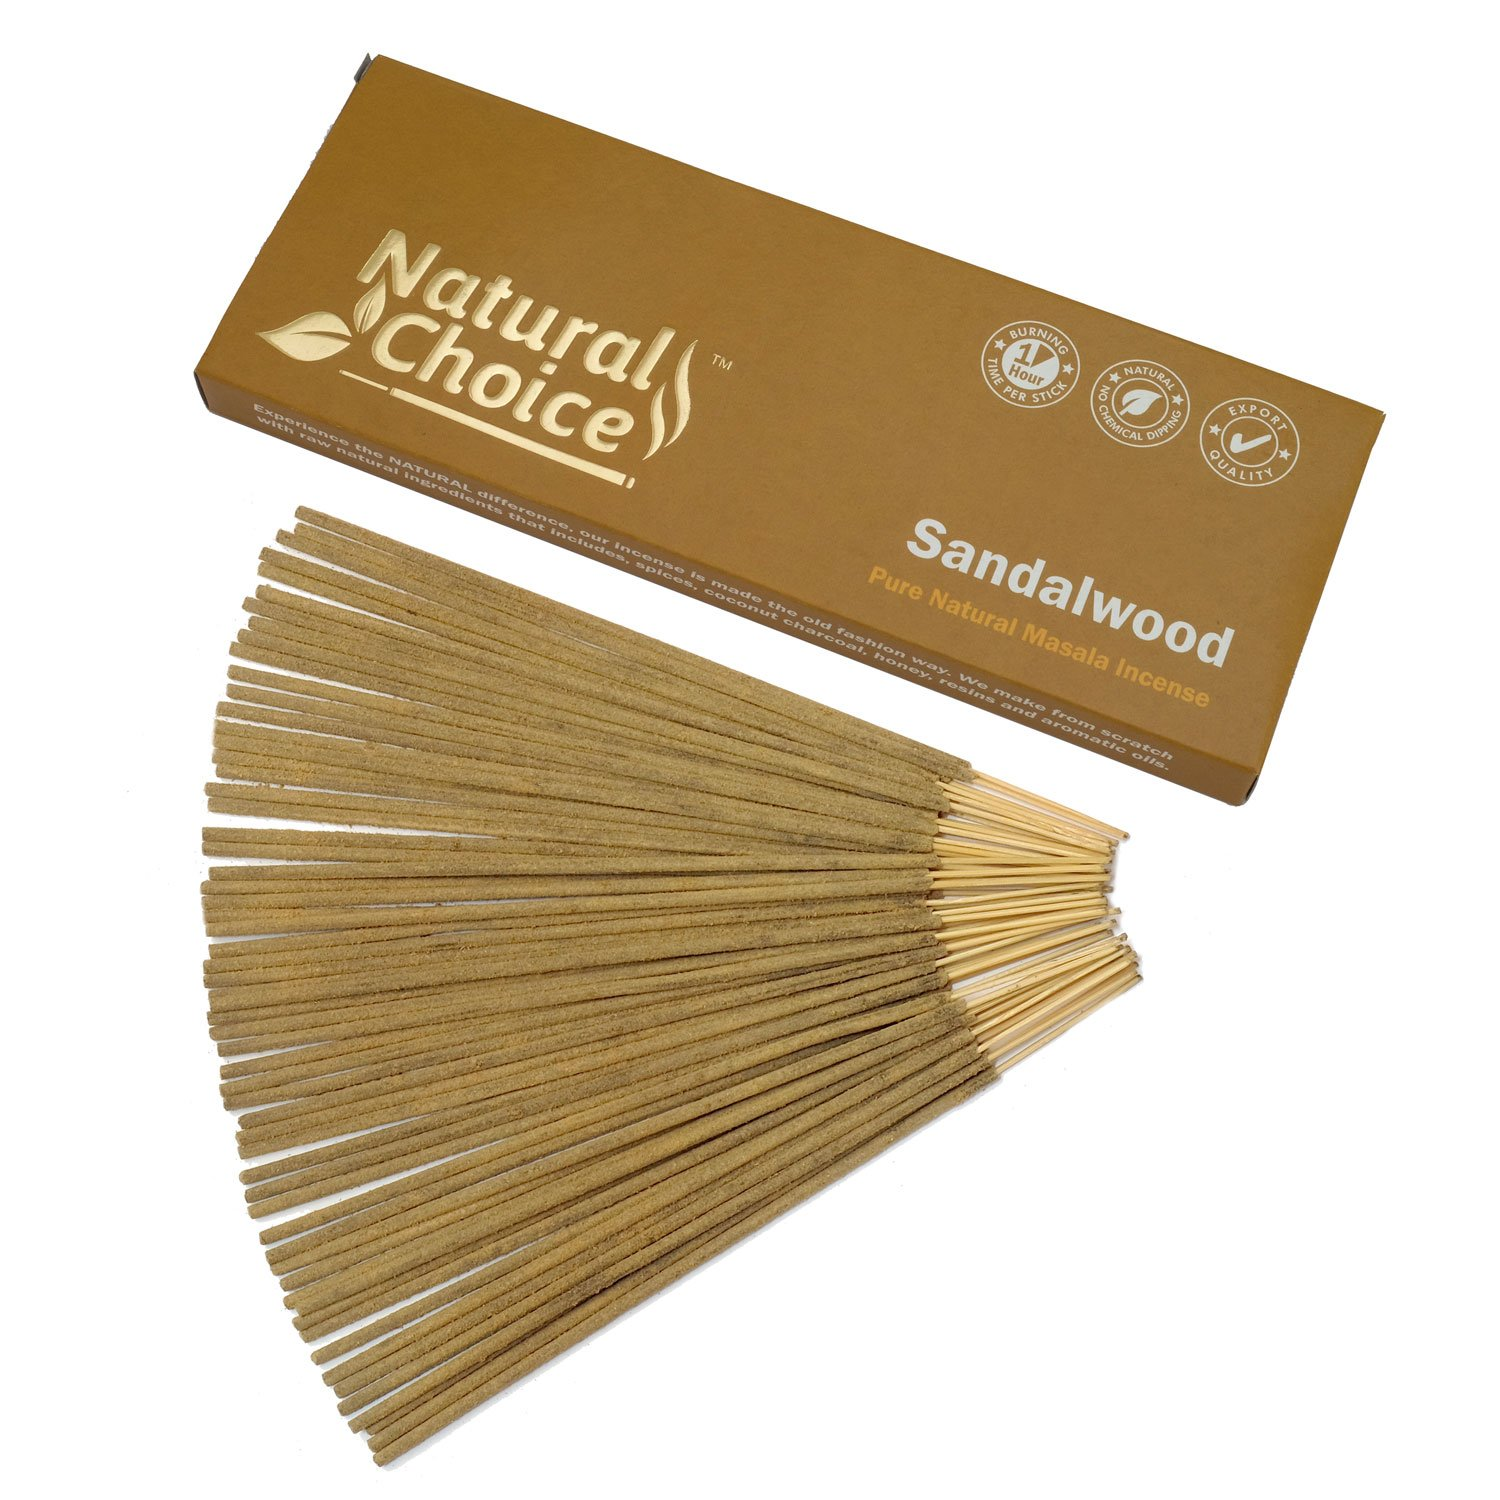 Natural Choice Incense Sandalwood Incense Sticks 100 Grams, Low Smoke Traditional Incense Sticks Made from Scratch, Never Dipped